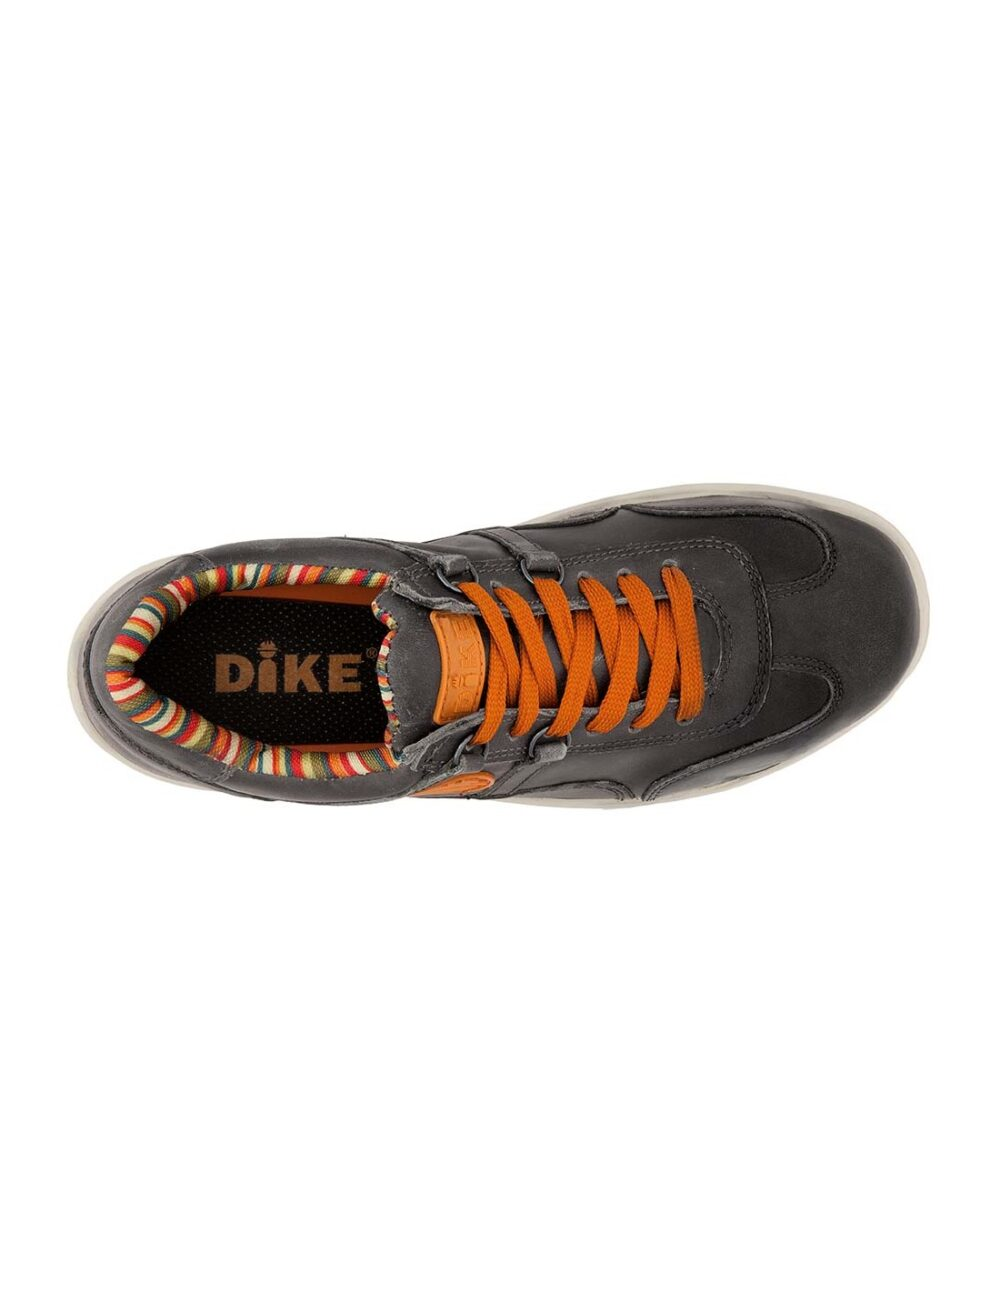 Overview of black raving safety shoe by dike